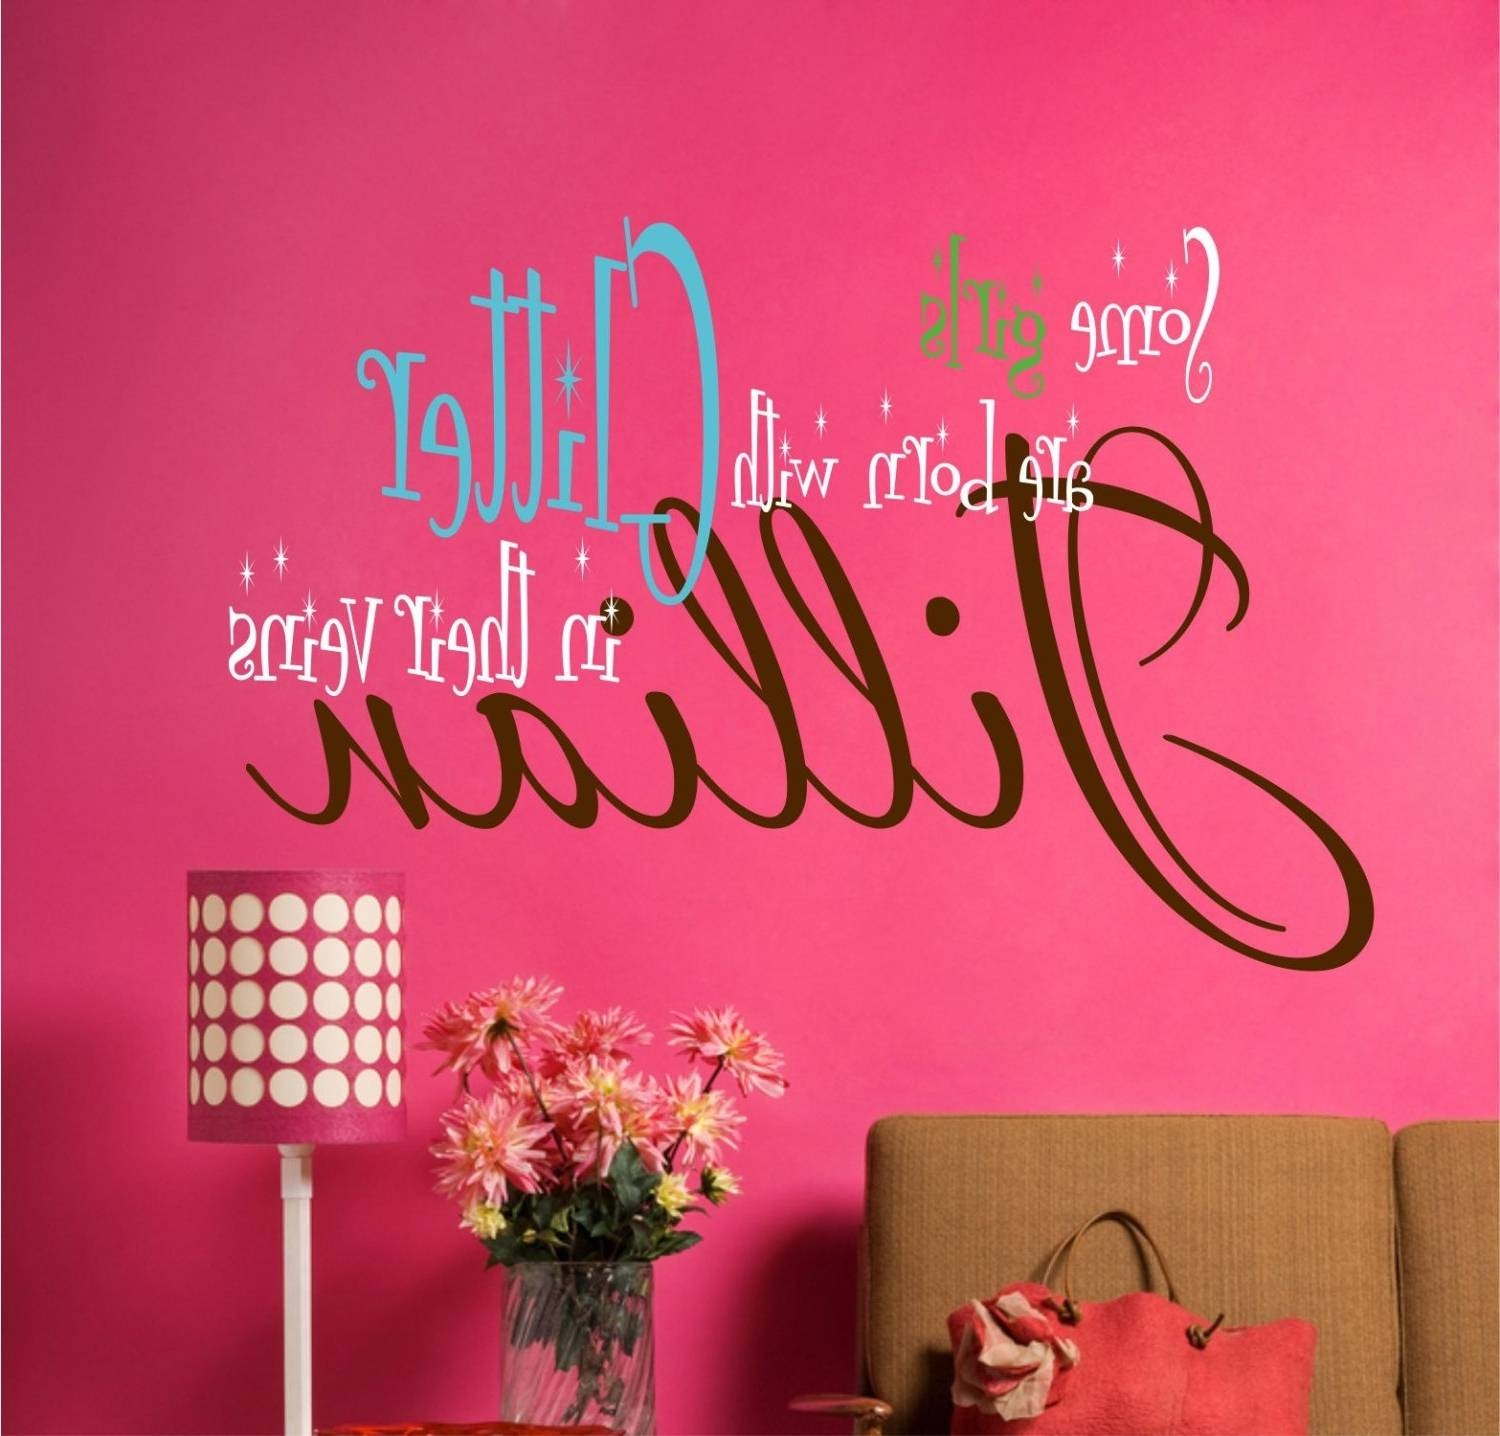 Teens Room : Popular Items For Teen Wall Art On Etsy In Teens Room With Best And Newest Wall Art For Teens (View 19 of 20)